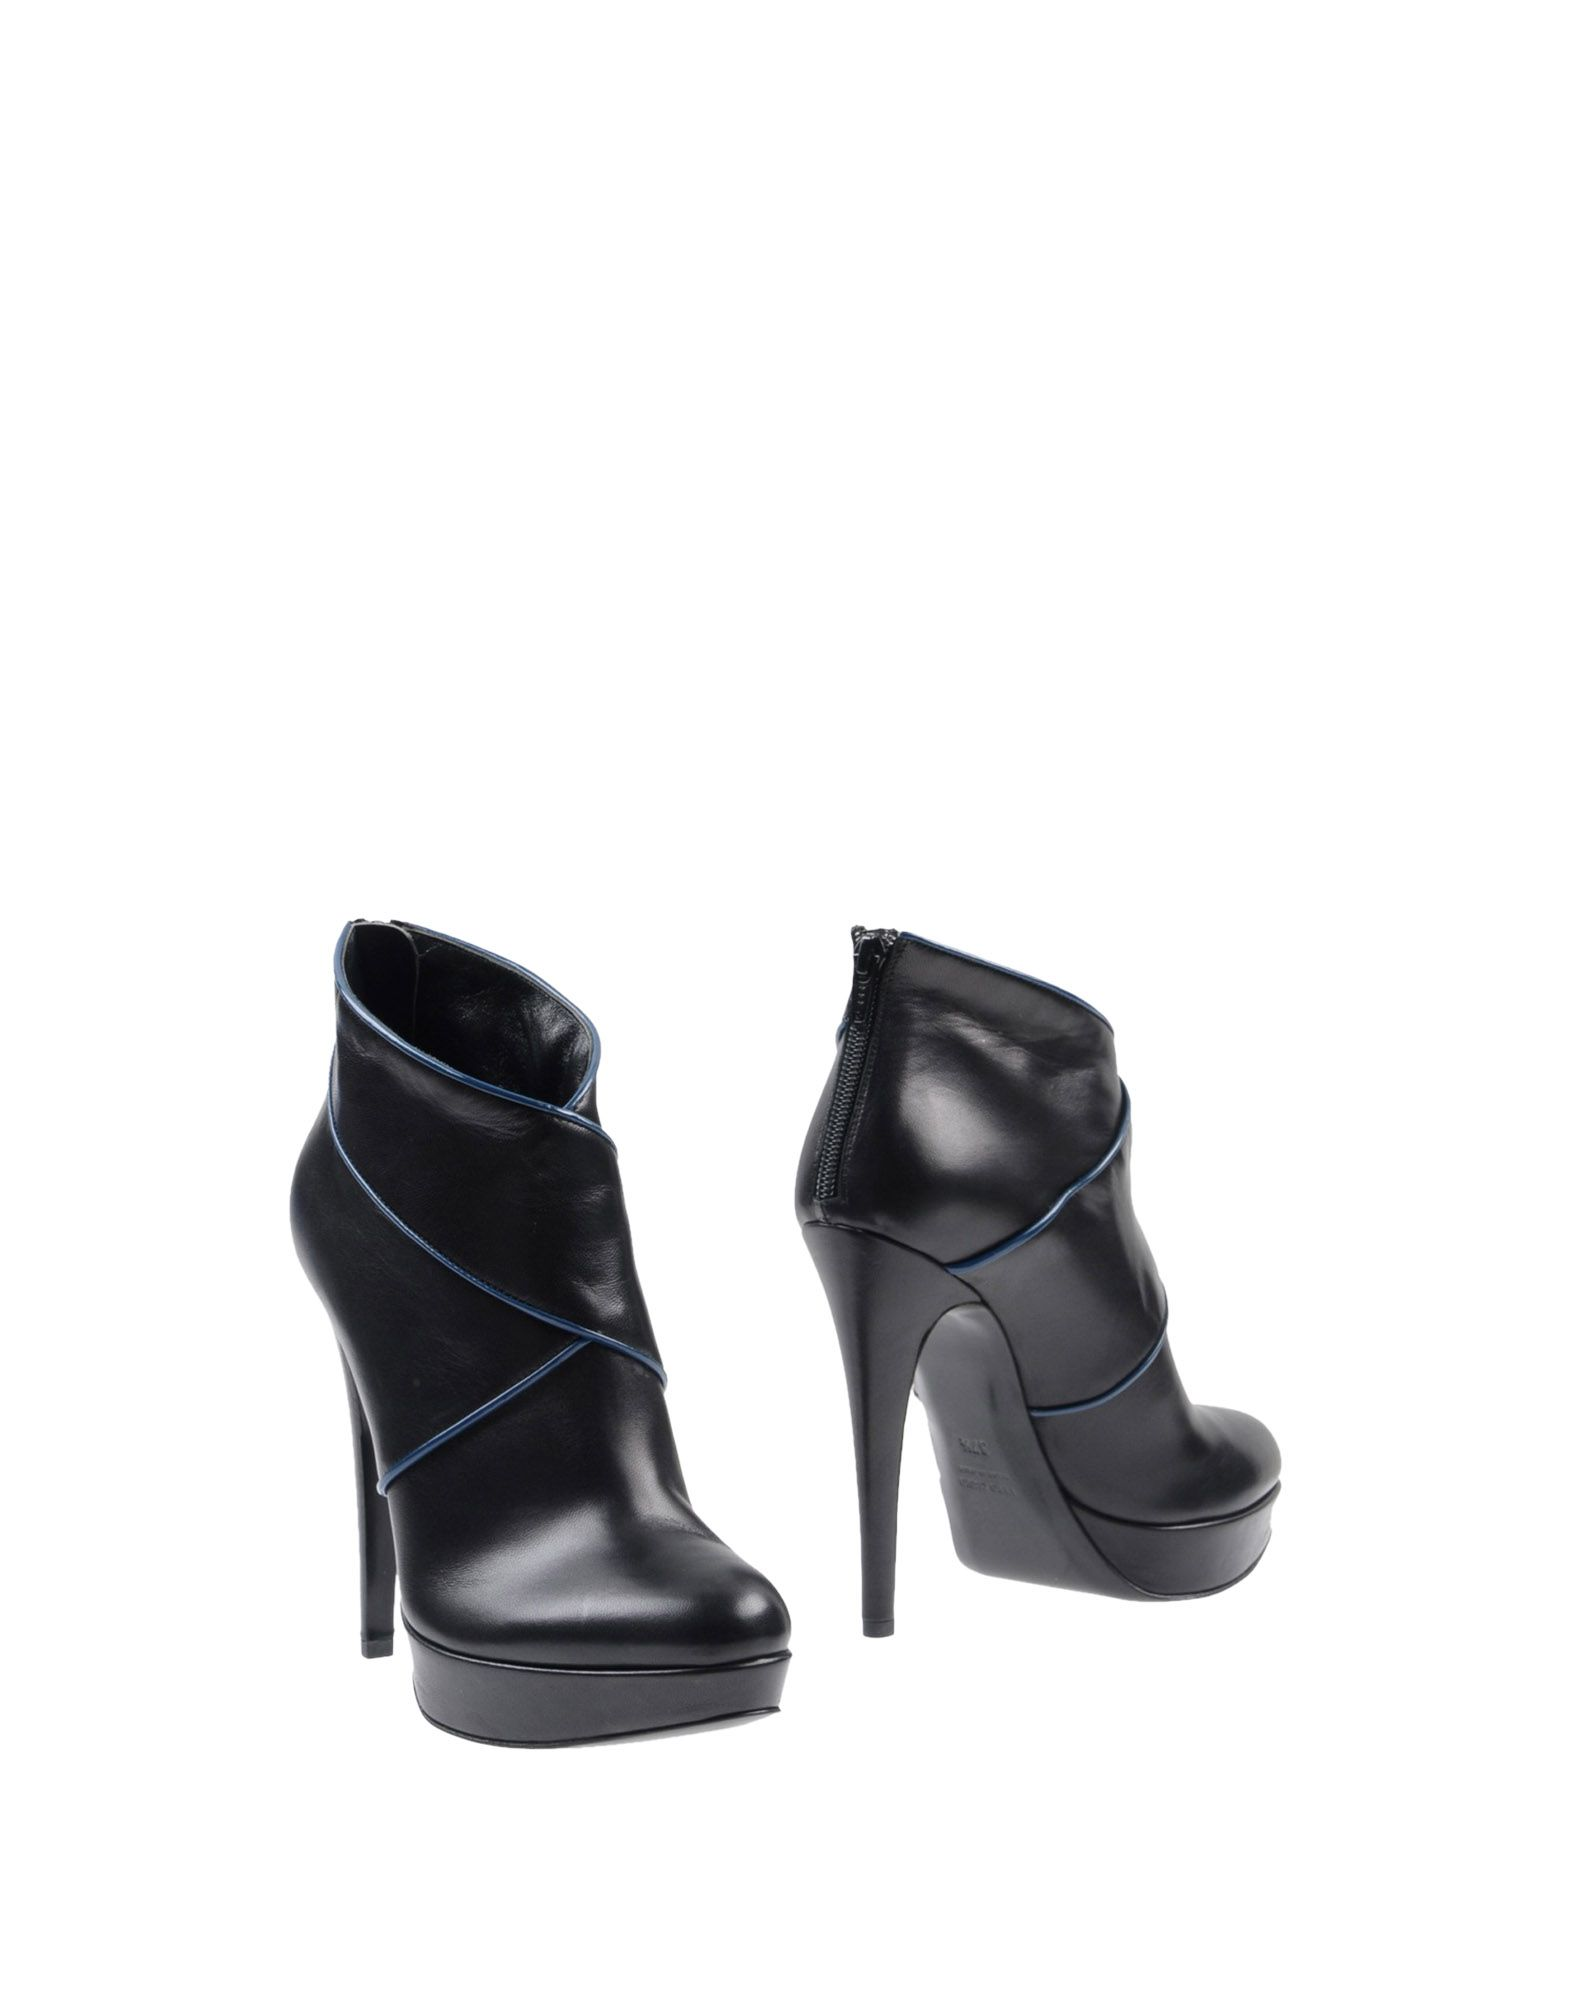 Bottine Chon Femme - Bottines Chon sur